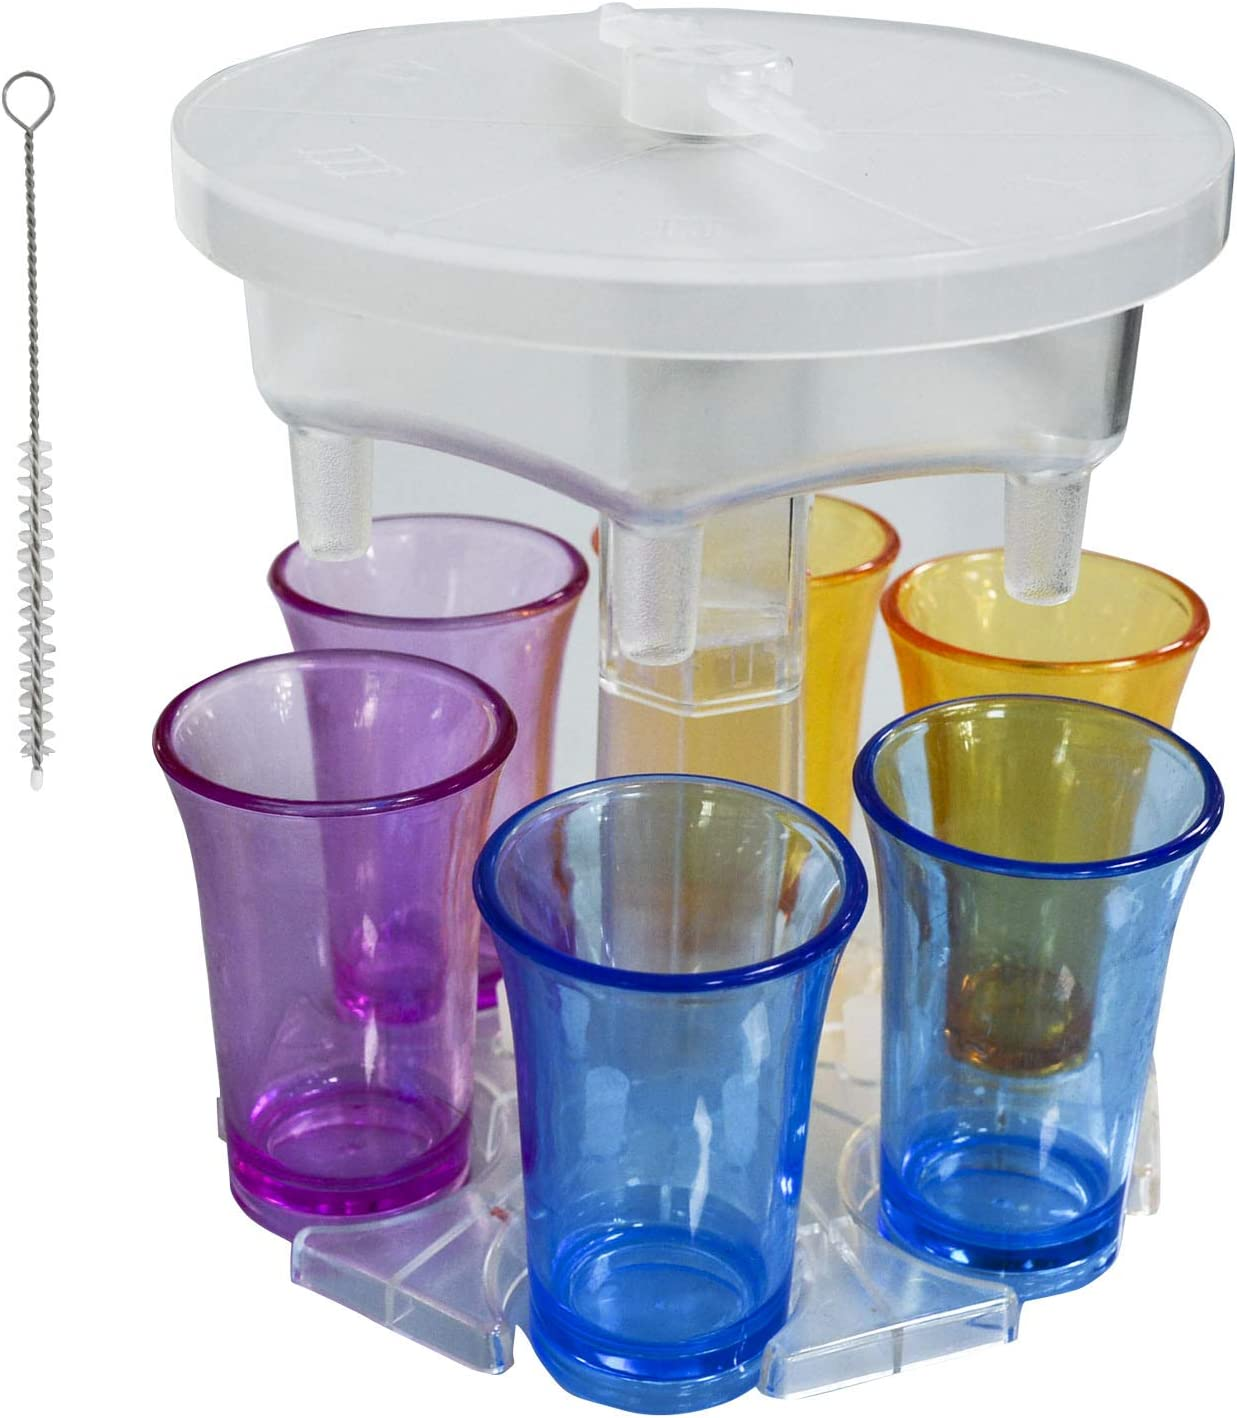 New Version 6 Shot Glass Dispenser and Holder With Game Turntable and 6 Silicone Plugs For Filling Liquids, Home Party Bar Shot Dispenser Cocktail Dispenser Carrier (Transparent/With 6 Cups)